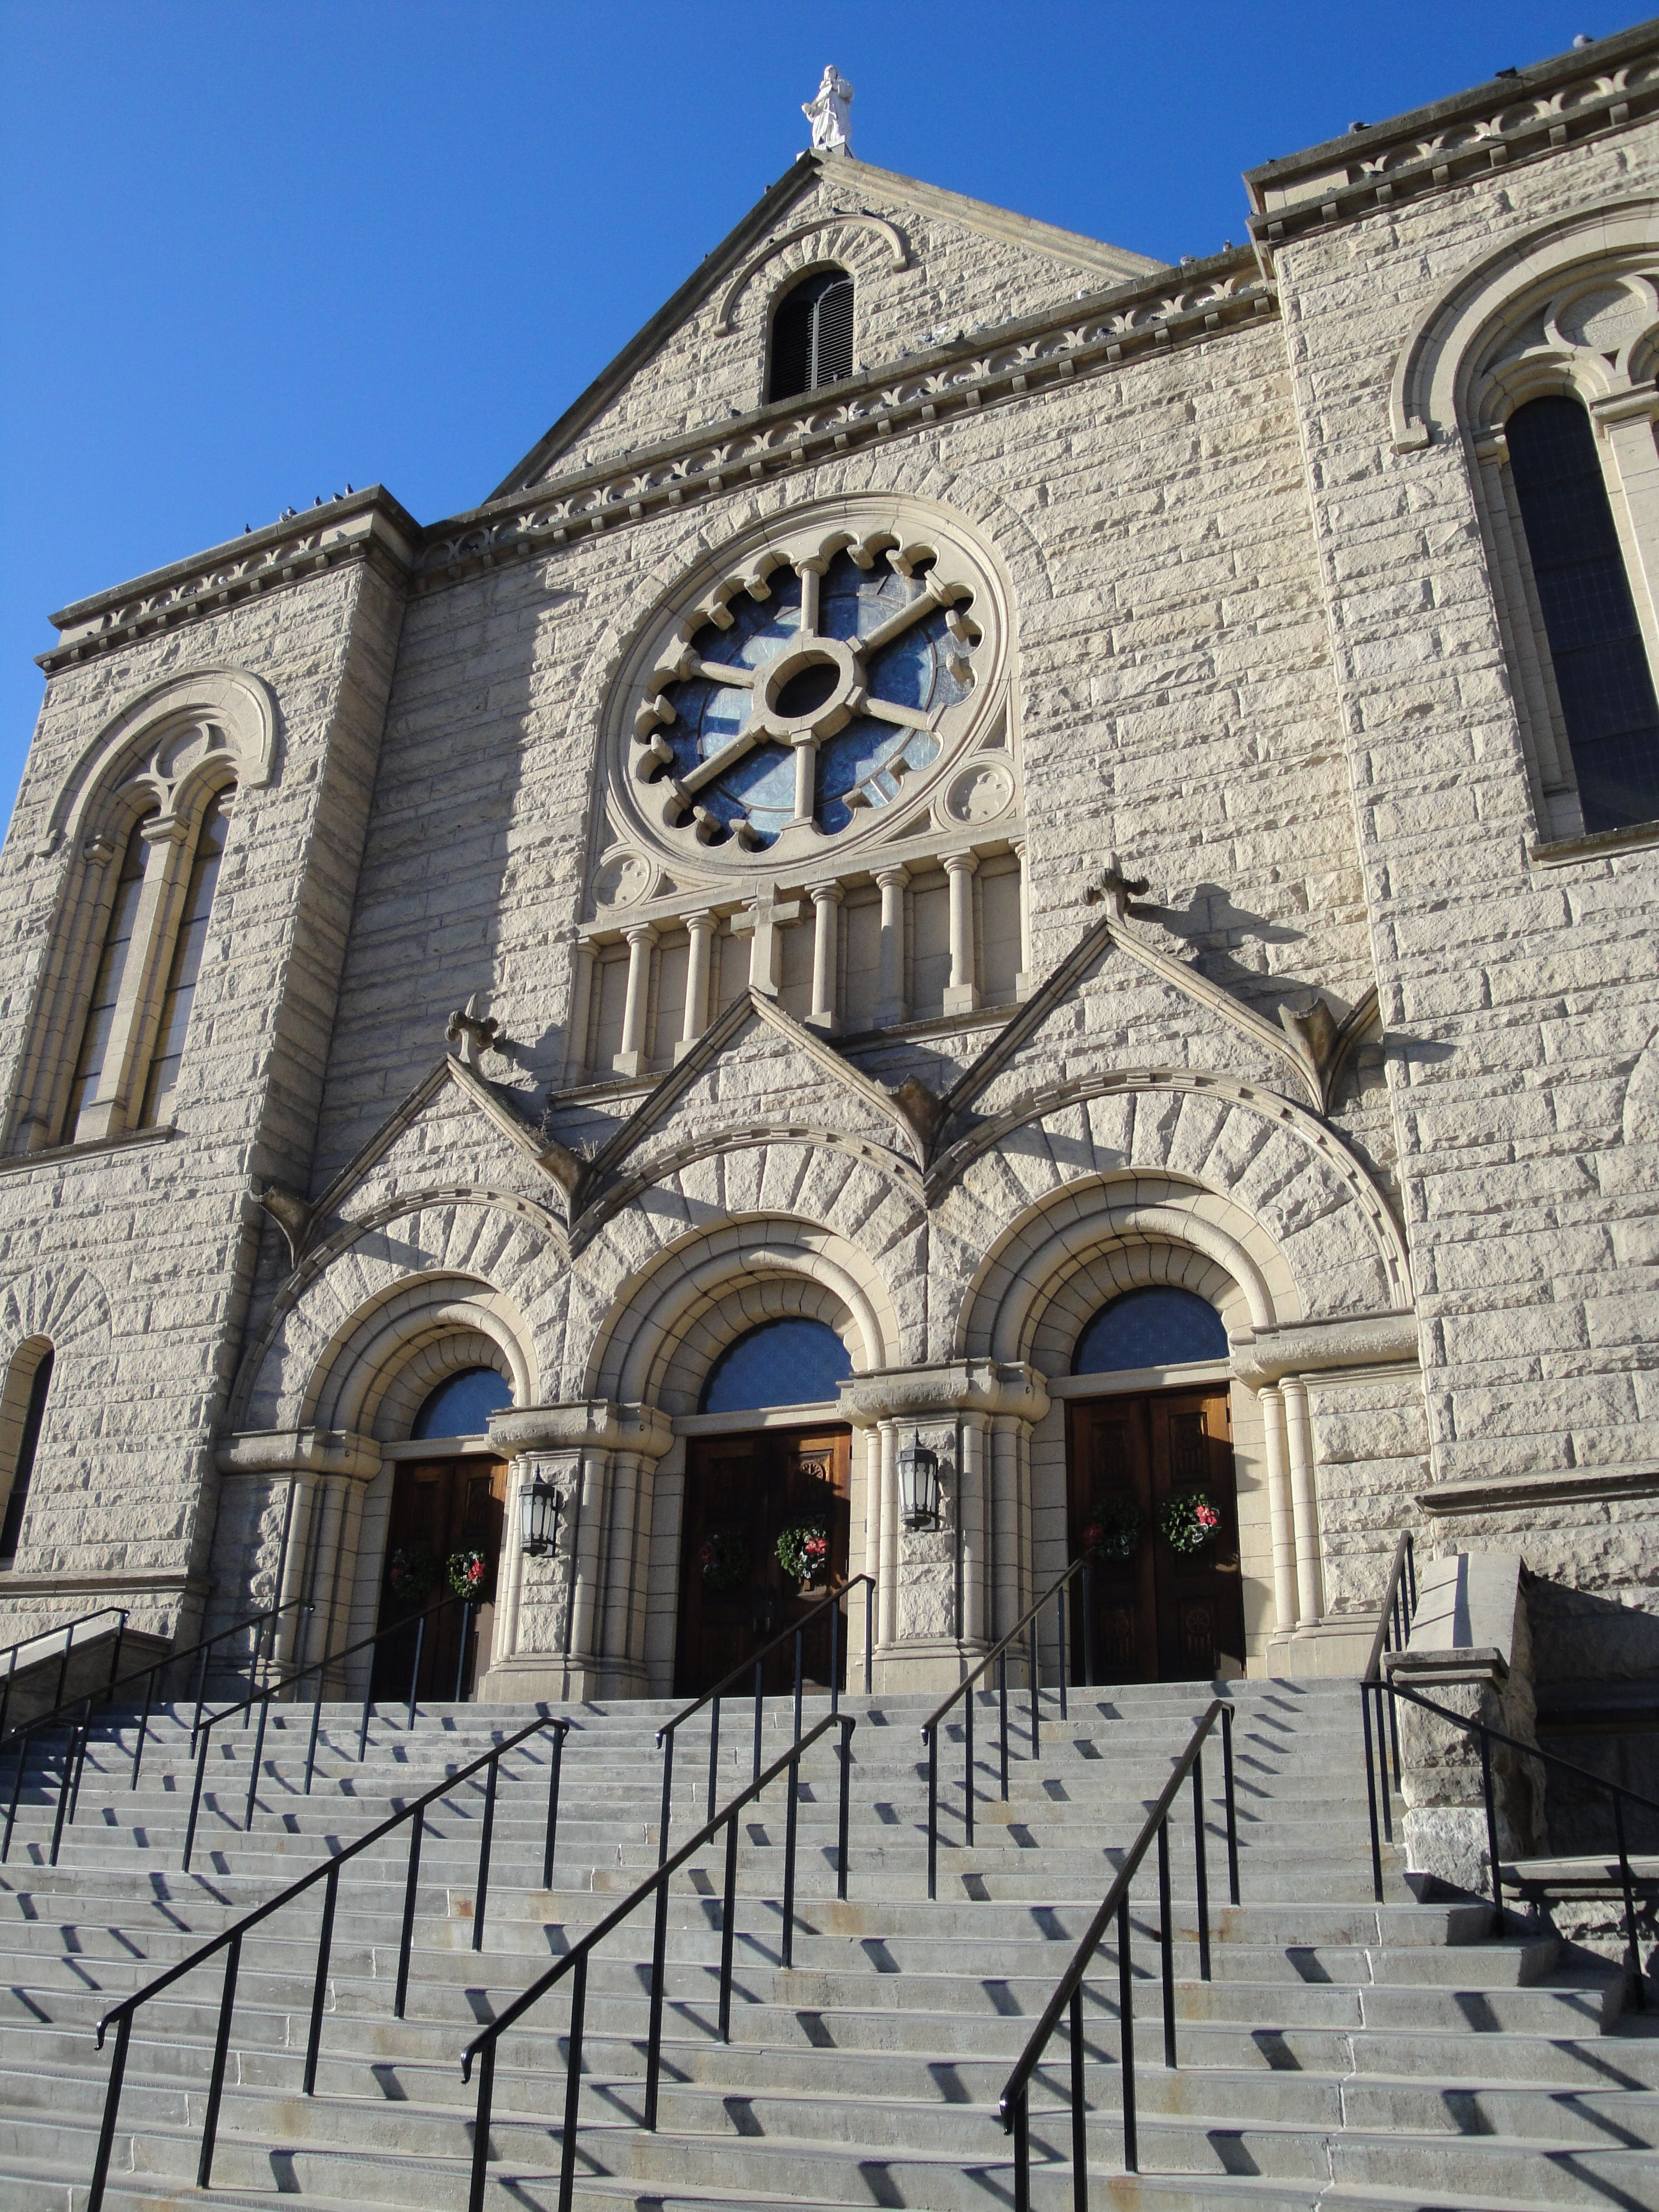 St. John's Cathedral  Boise, Idaho; My Mom's favorite church on her visits